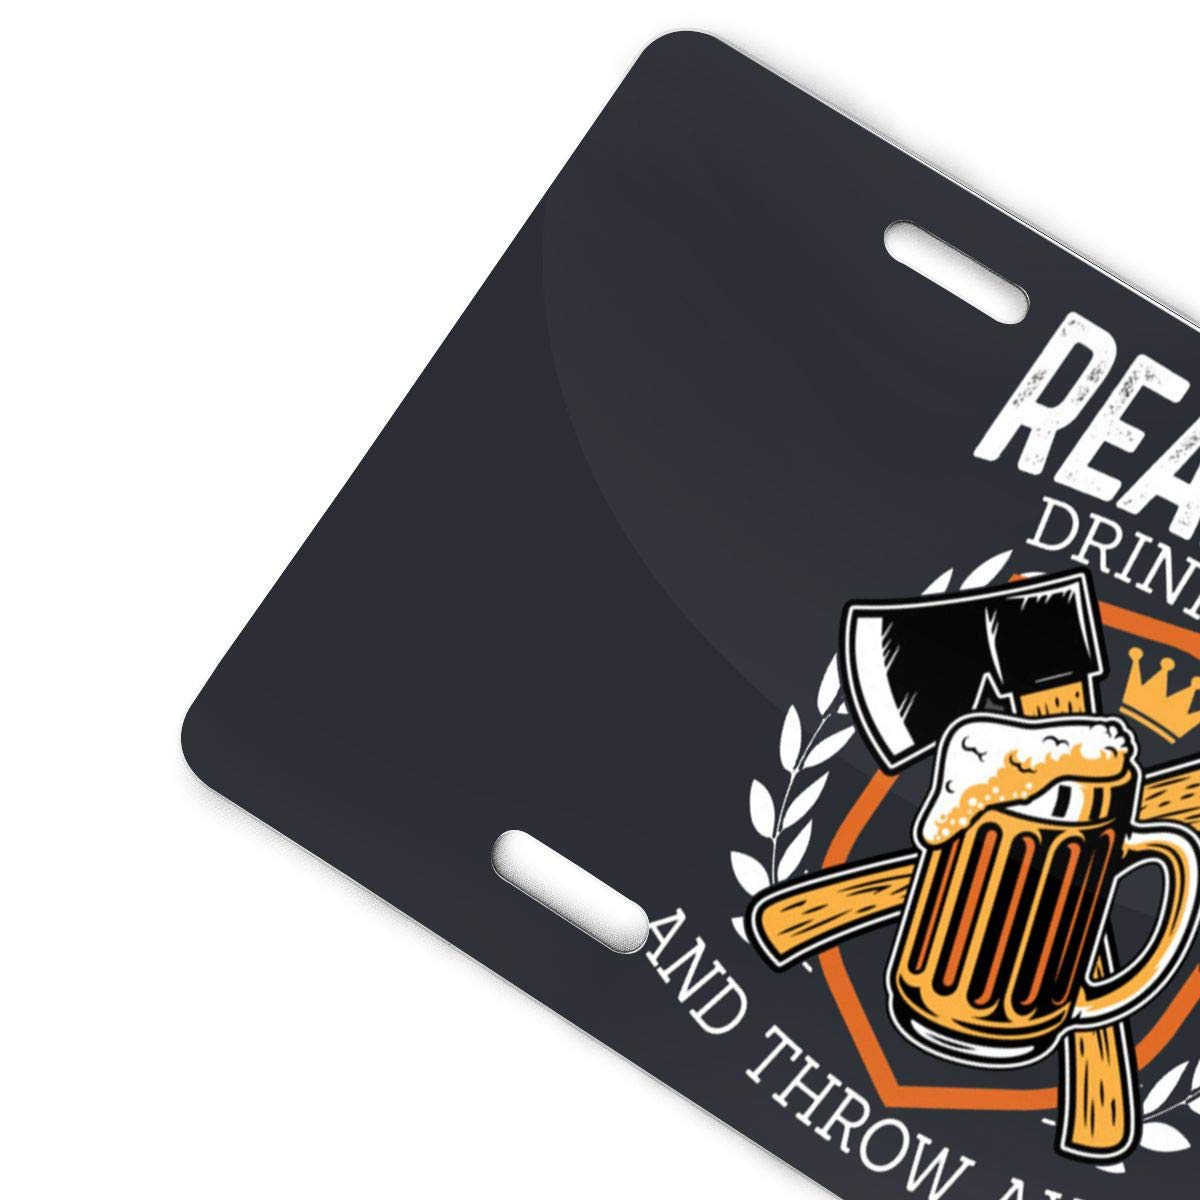 Oppo-ww Funny Real Men Drink Beer and Throw Axes Hatchet Throwing Retro License Plates for Car Decoration 6 Inch X 12 Inch